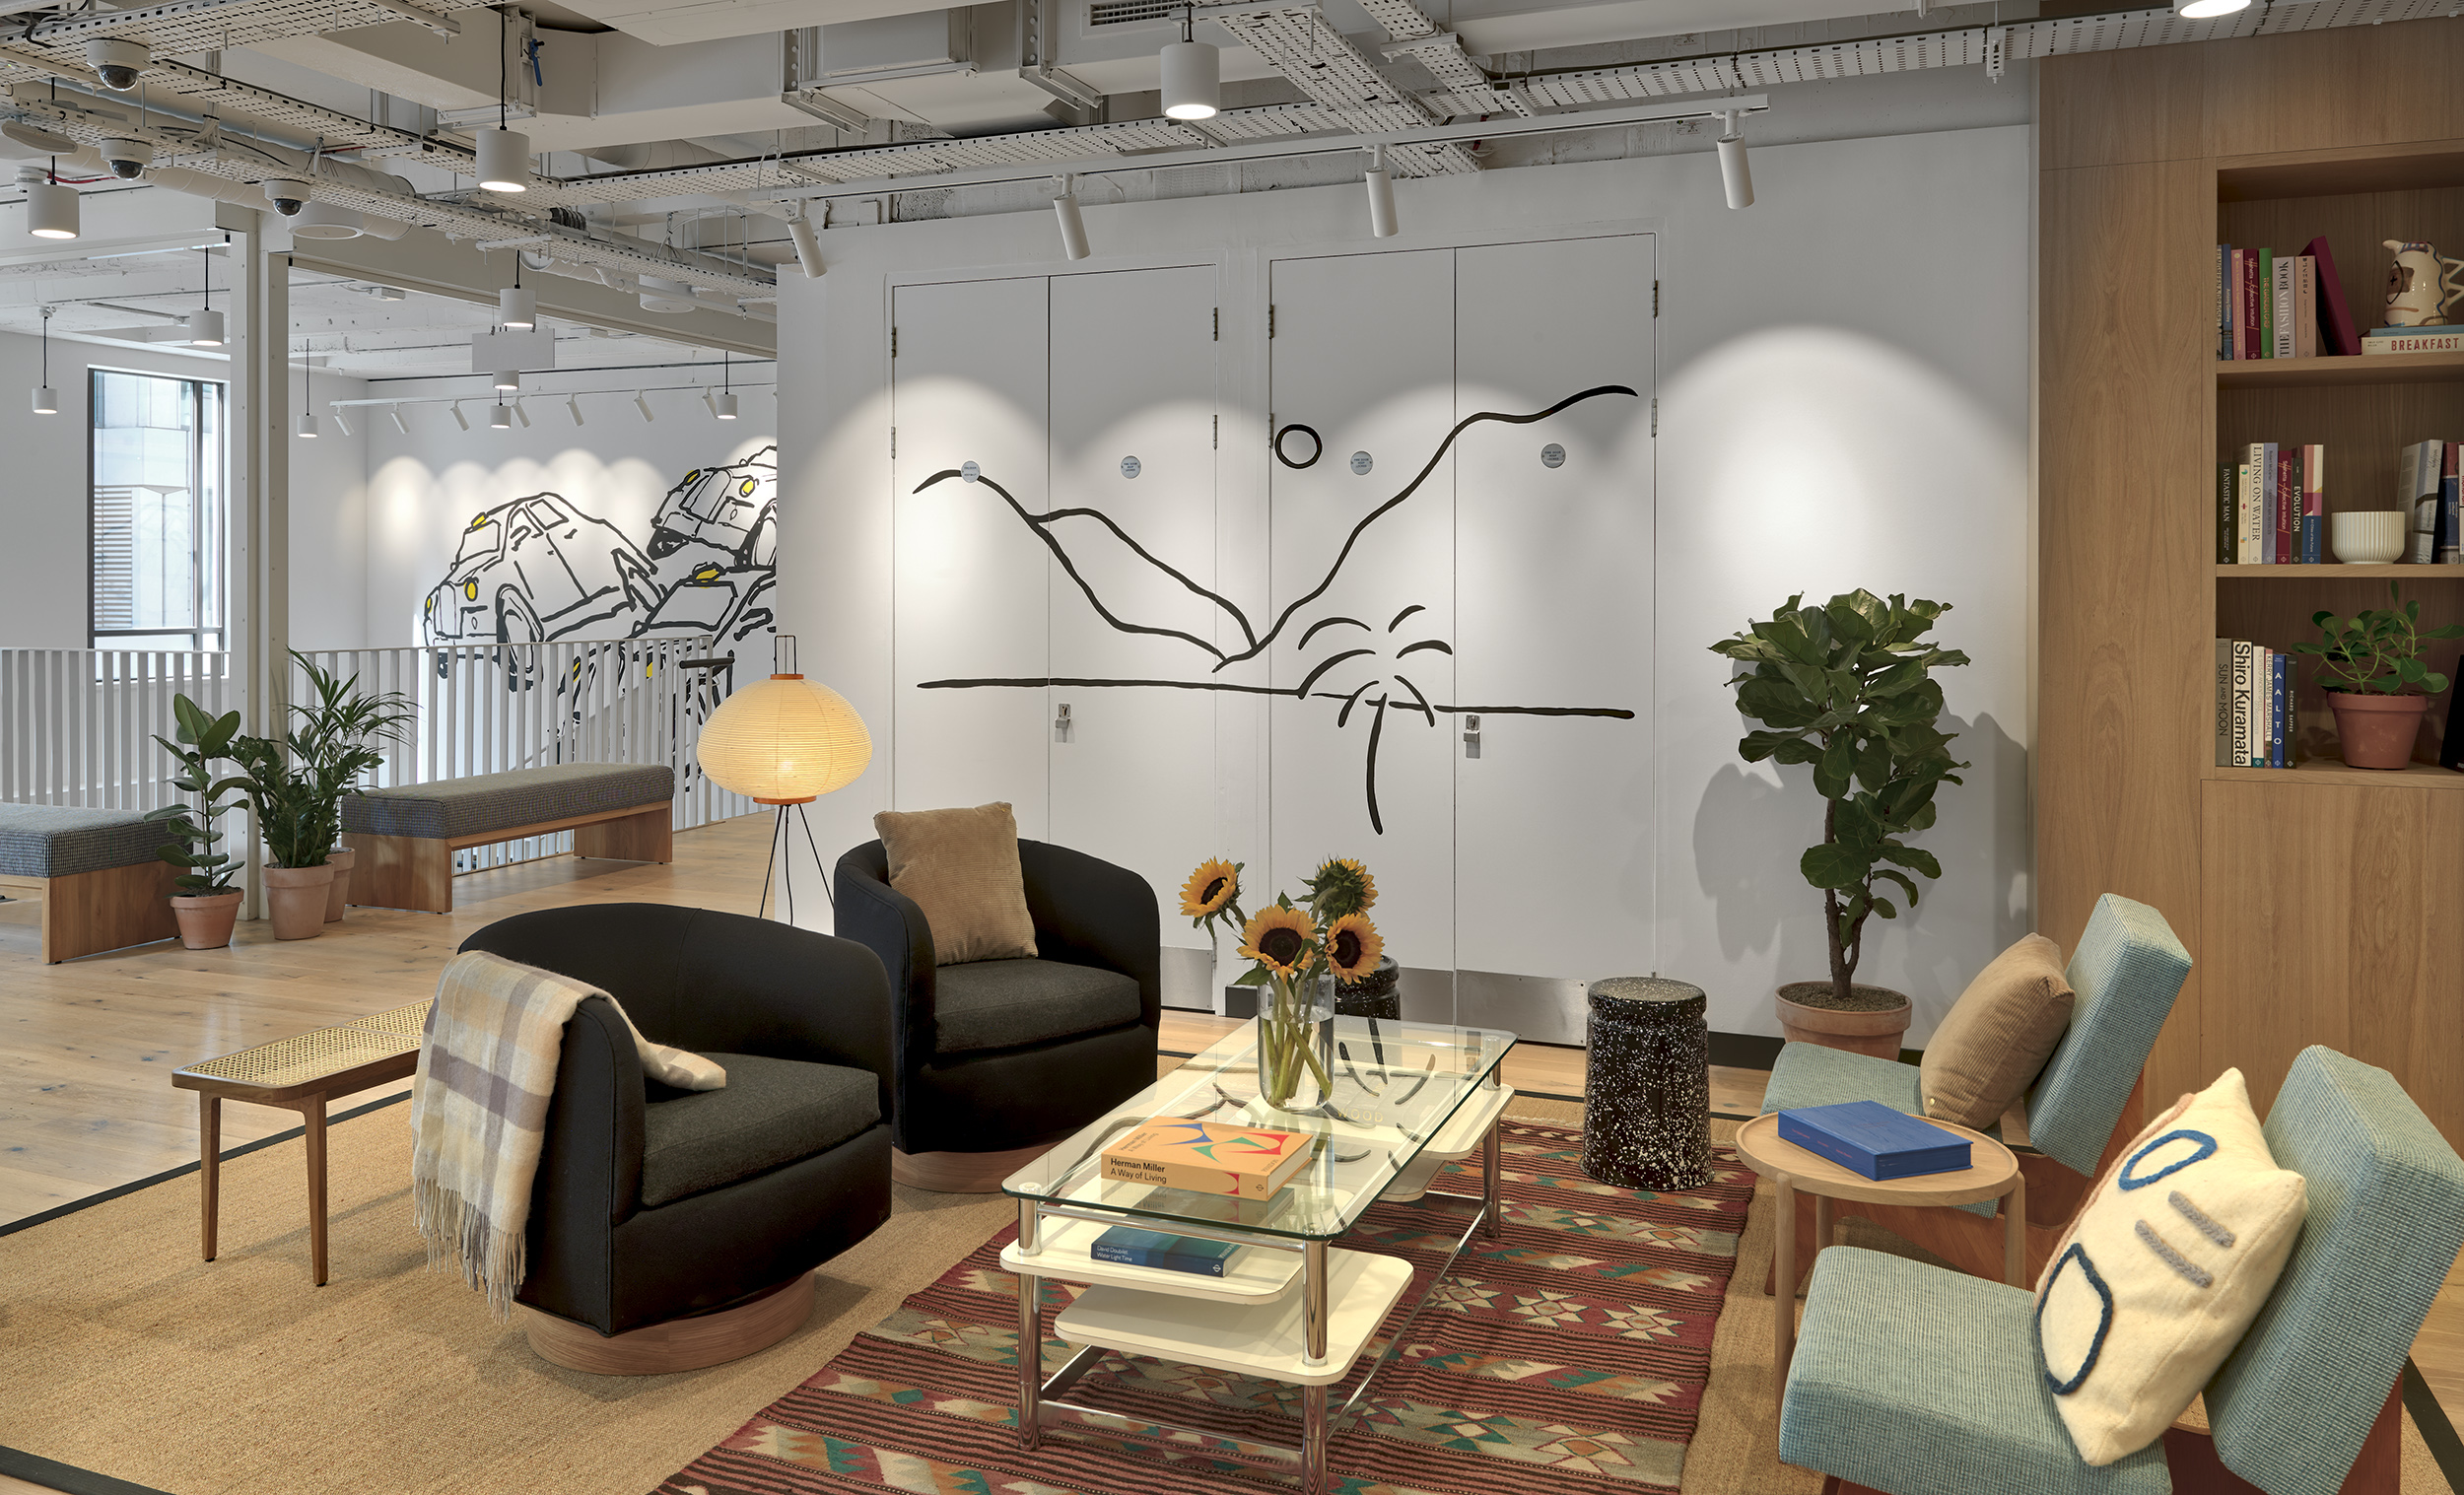 Wework Moorgate x The London Mural Company 2